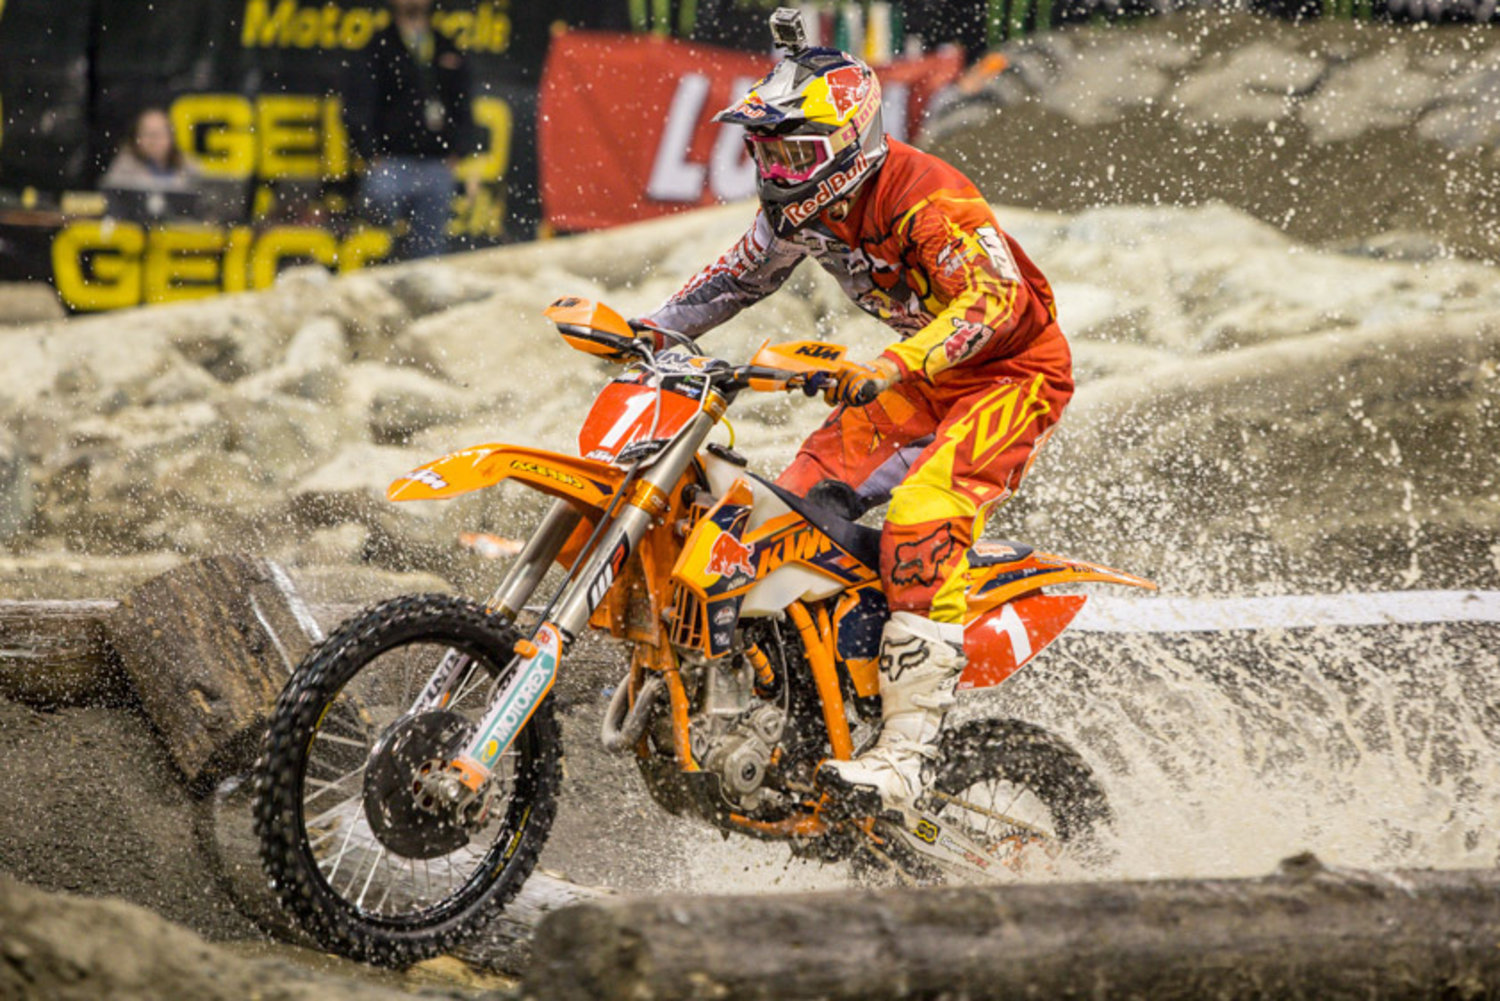 taddy-blazusiak-red-bull-ktm-endurocross-2013-boise-idaho